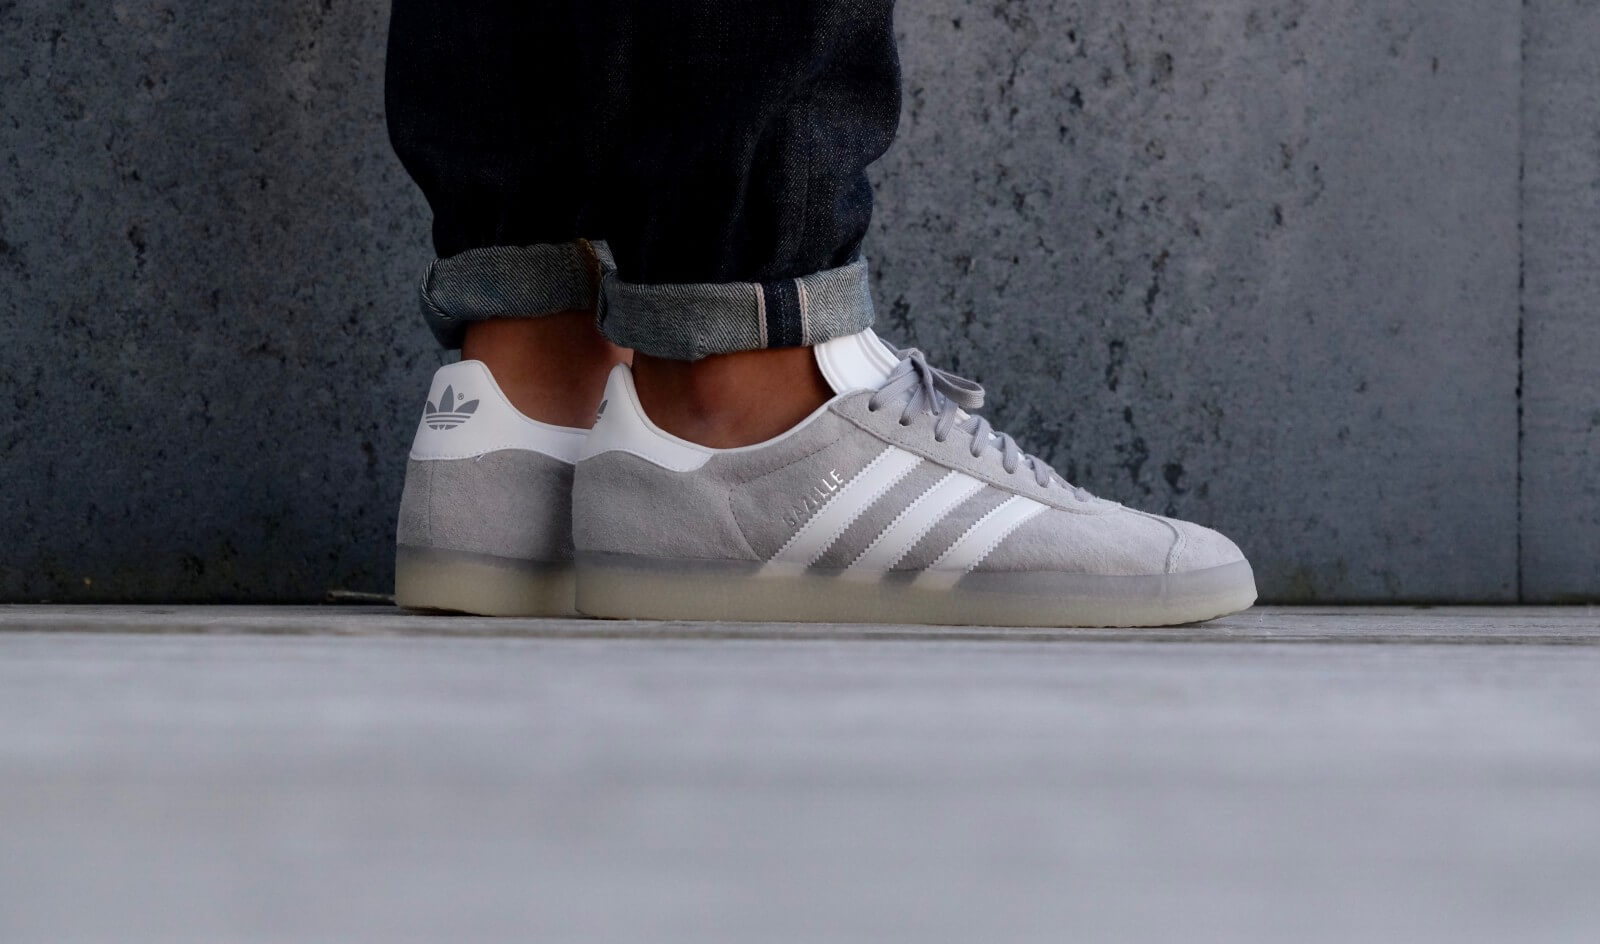 Adidas Gazelle Mid Grey White BB5502